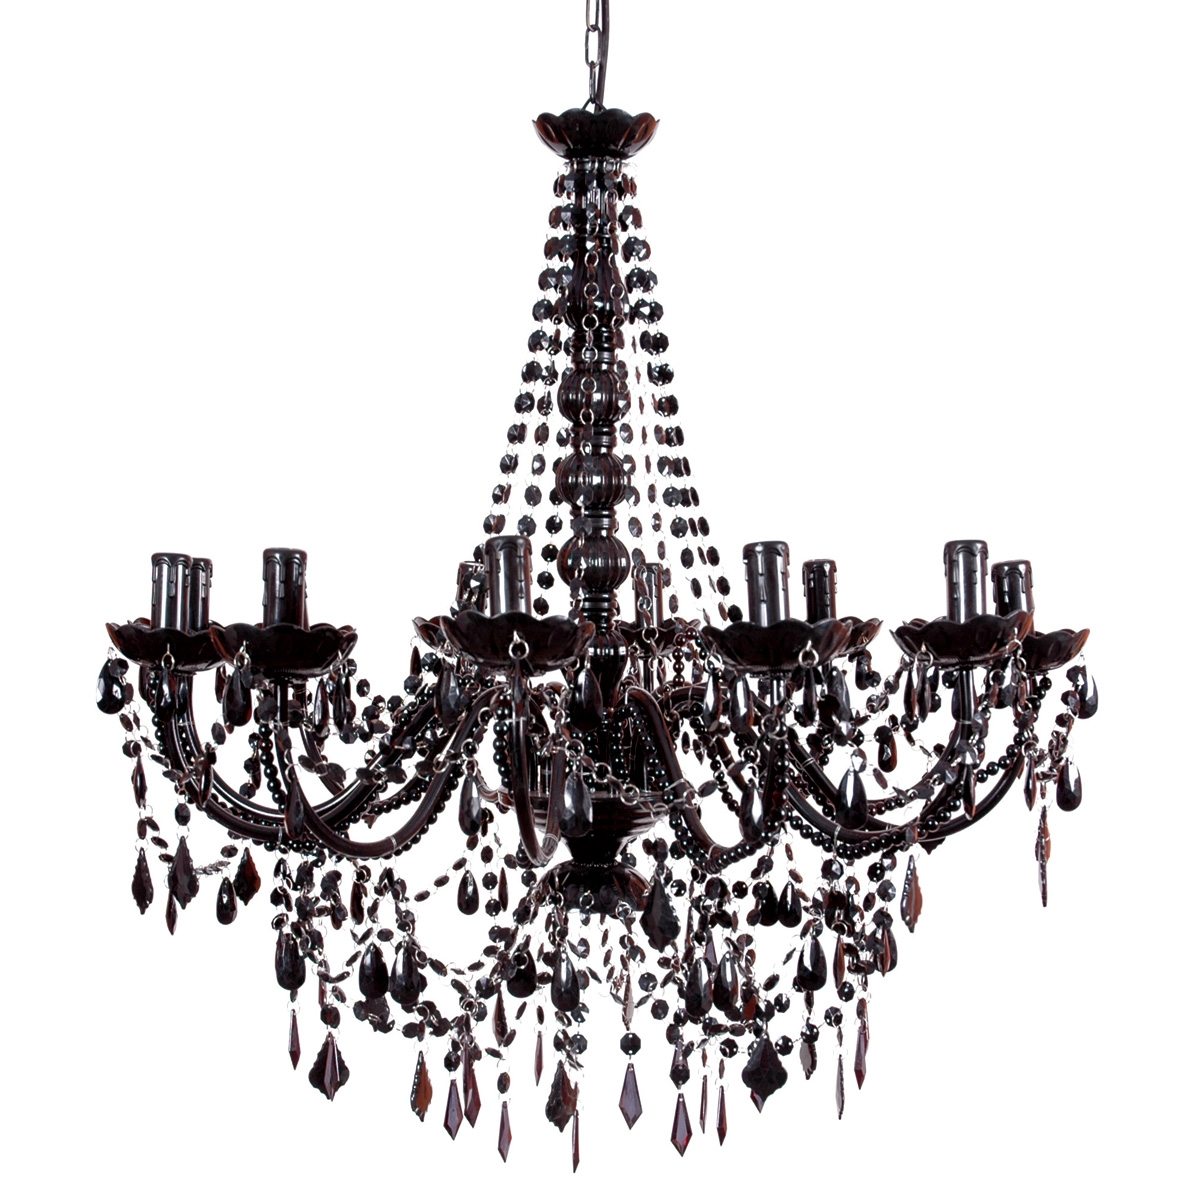 Vintage Black Chandelier For Bedroom Image 4 Courtagerivegauche Inside Vintage Black Chandelier (#8 of 12)